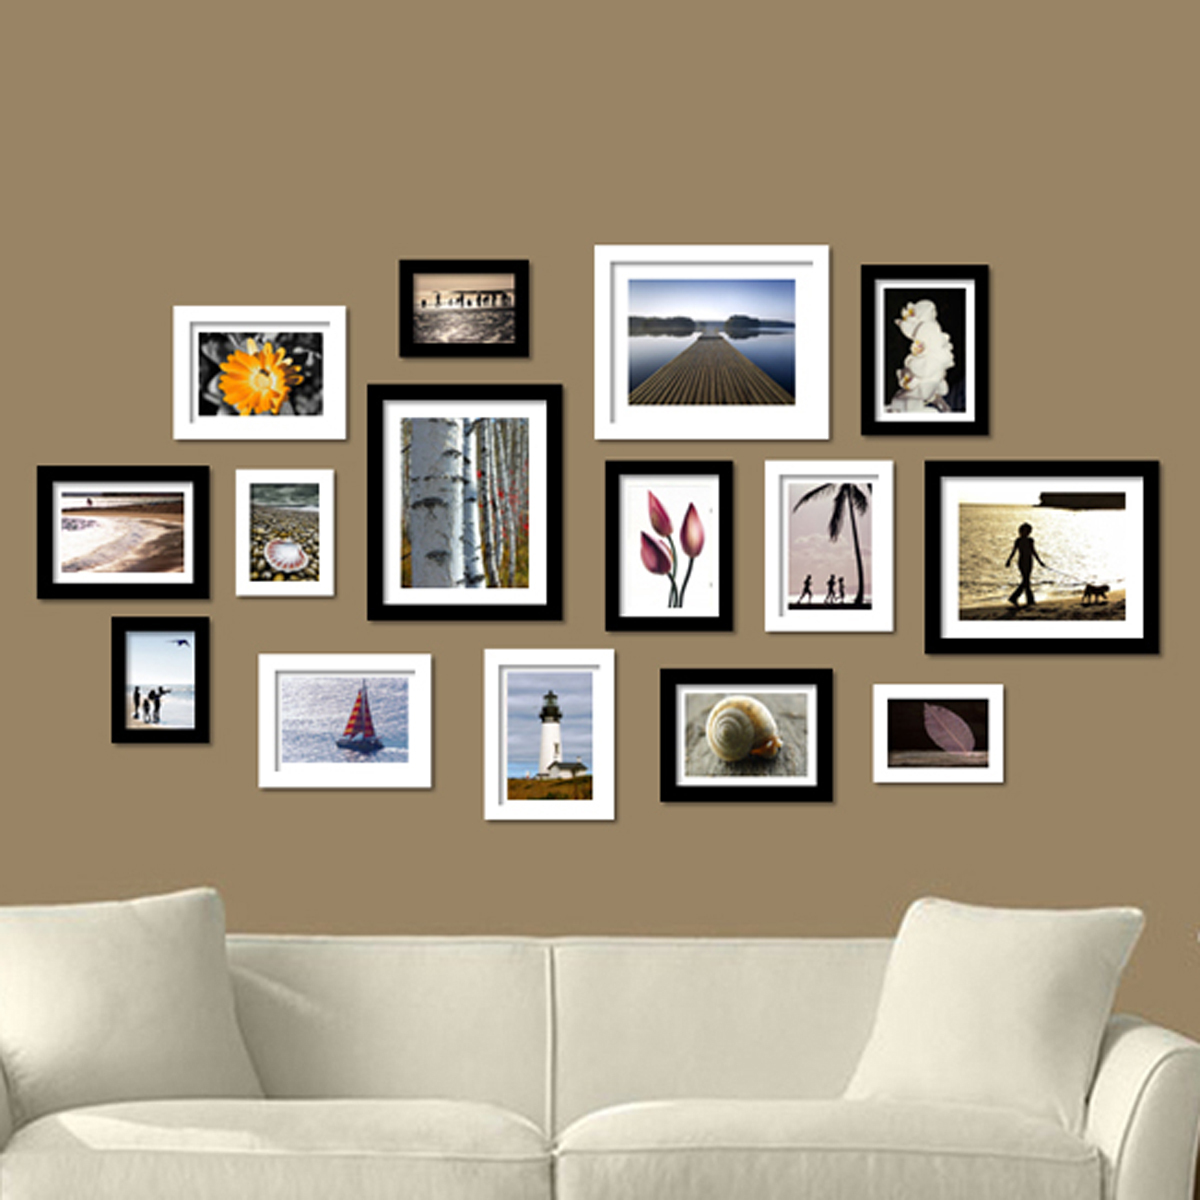 Deco cadres photos mur id es de for Idee deco mur